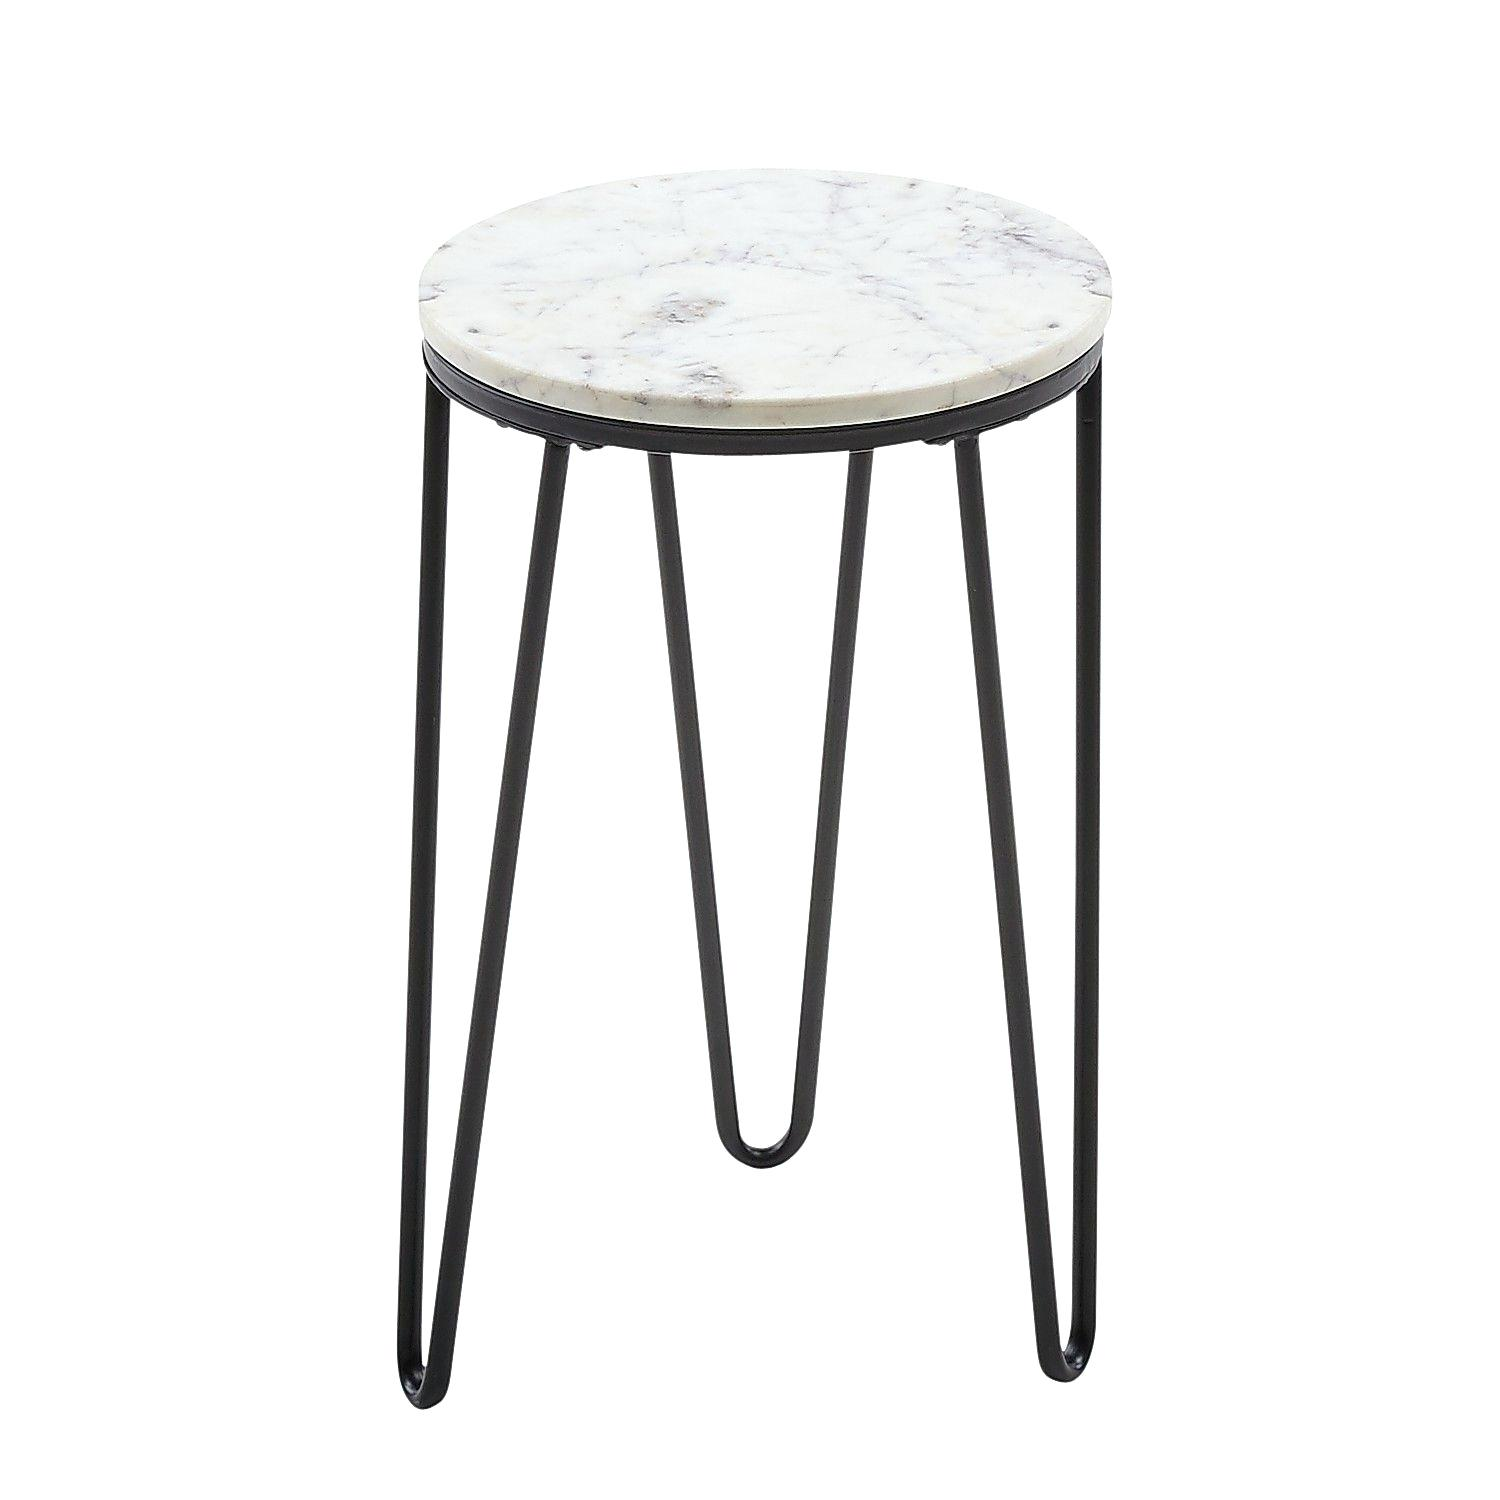 mosaic accent table patio coffee clean outdoor pier tables elba save this item kenzie led bedside lamp groups copper room essentials distressed tiffany glassware centerpiece